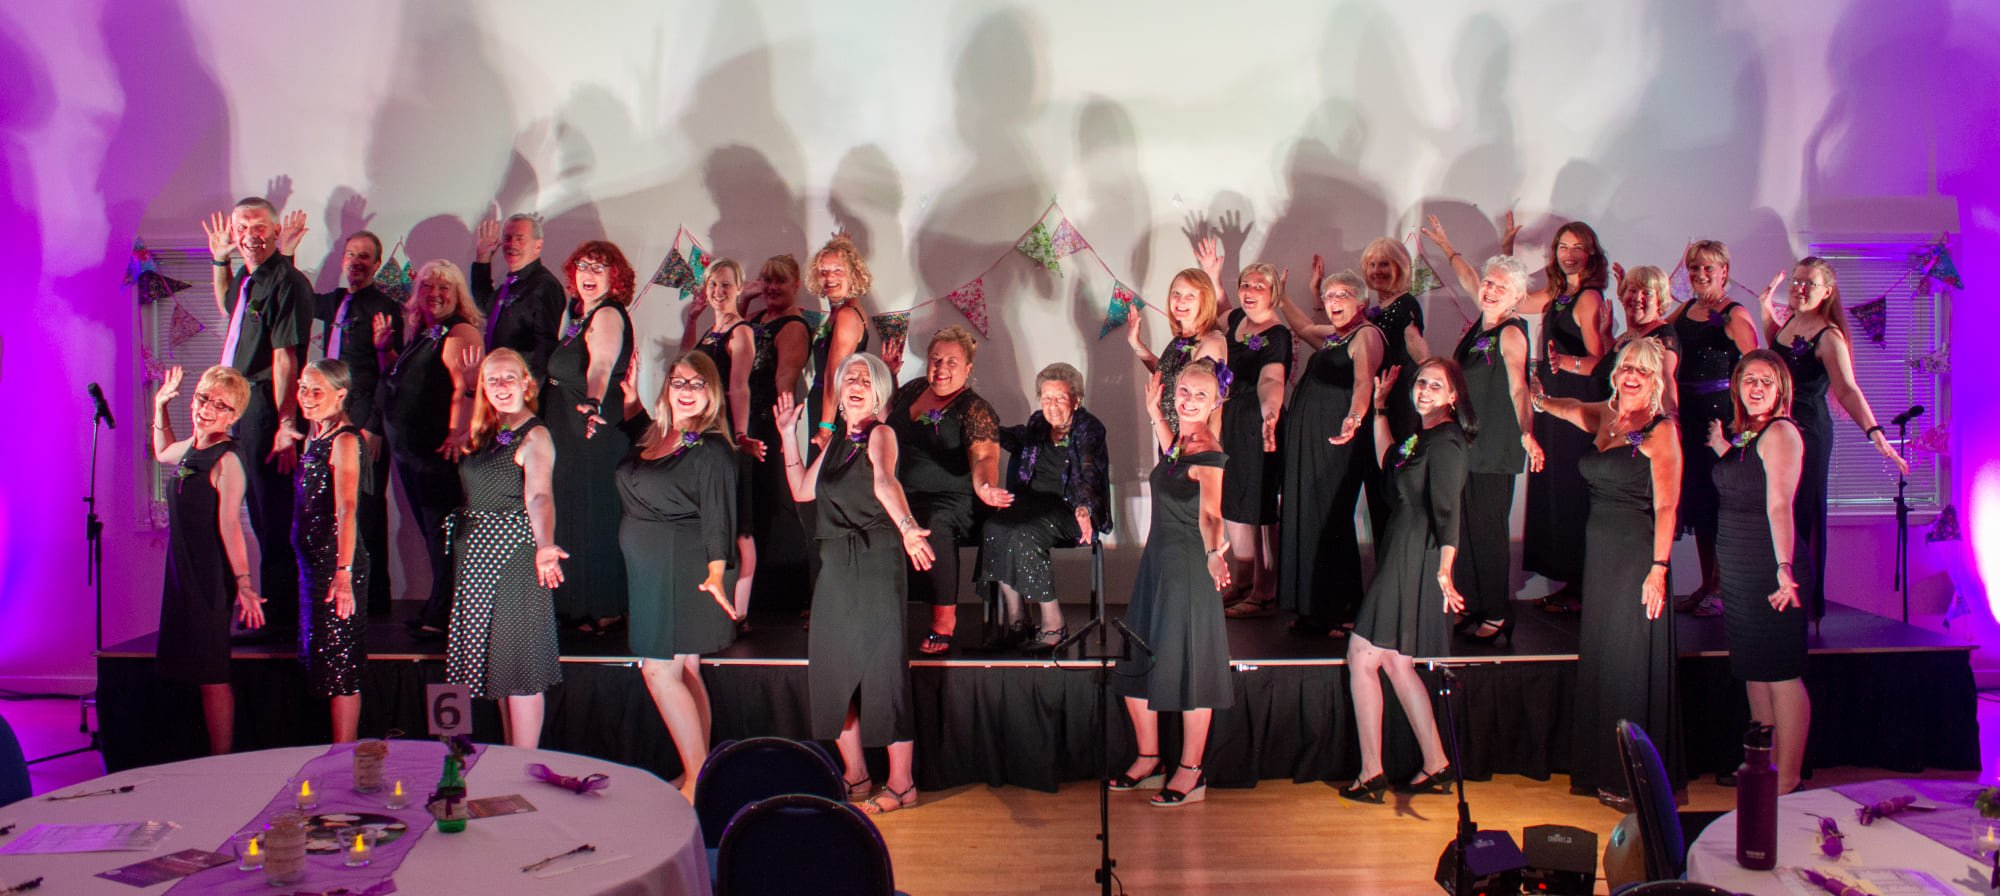 Unity Choir led by The Singing Elf at Summer Gala Songs from the Shows July 2018 at The Hetton Centre